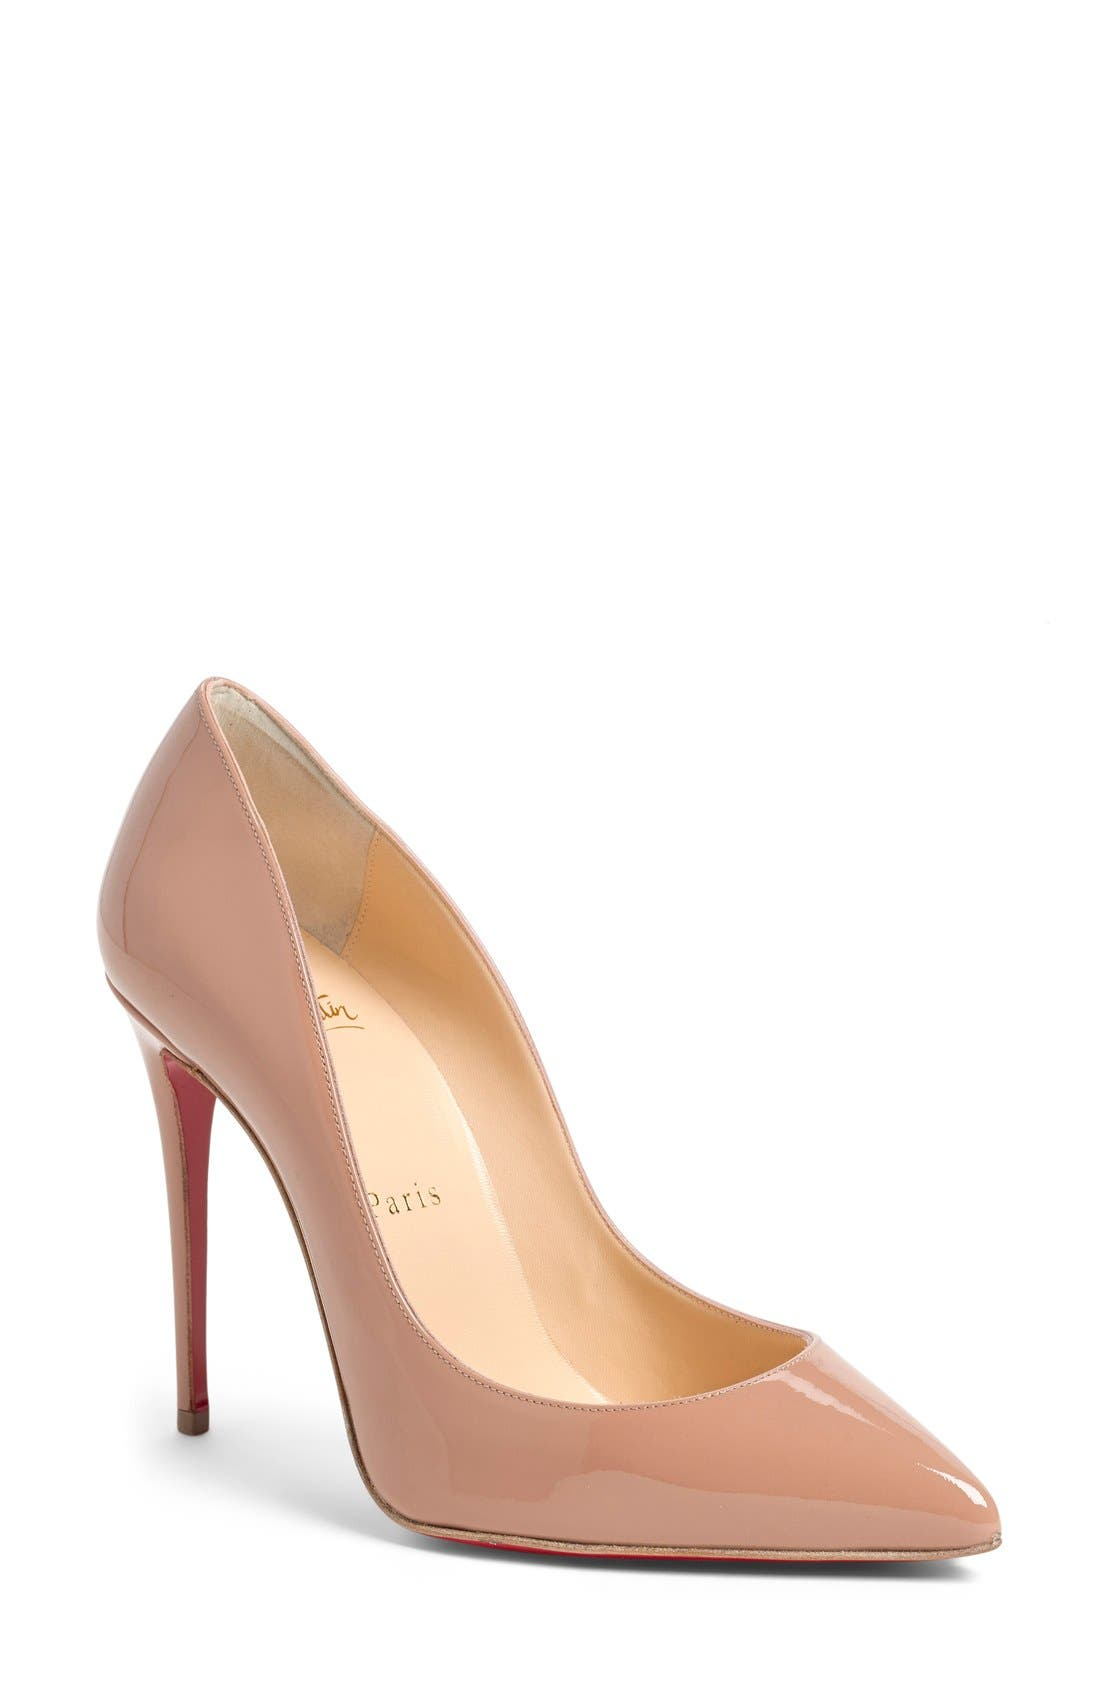 Main Image - Christian Louboutin 'Pigalle Follies' Pointy Toe Pump